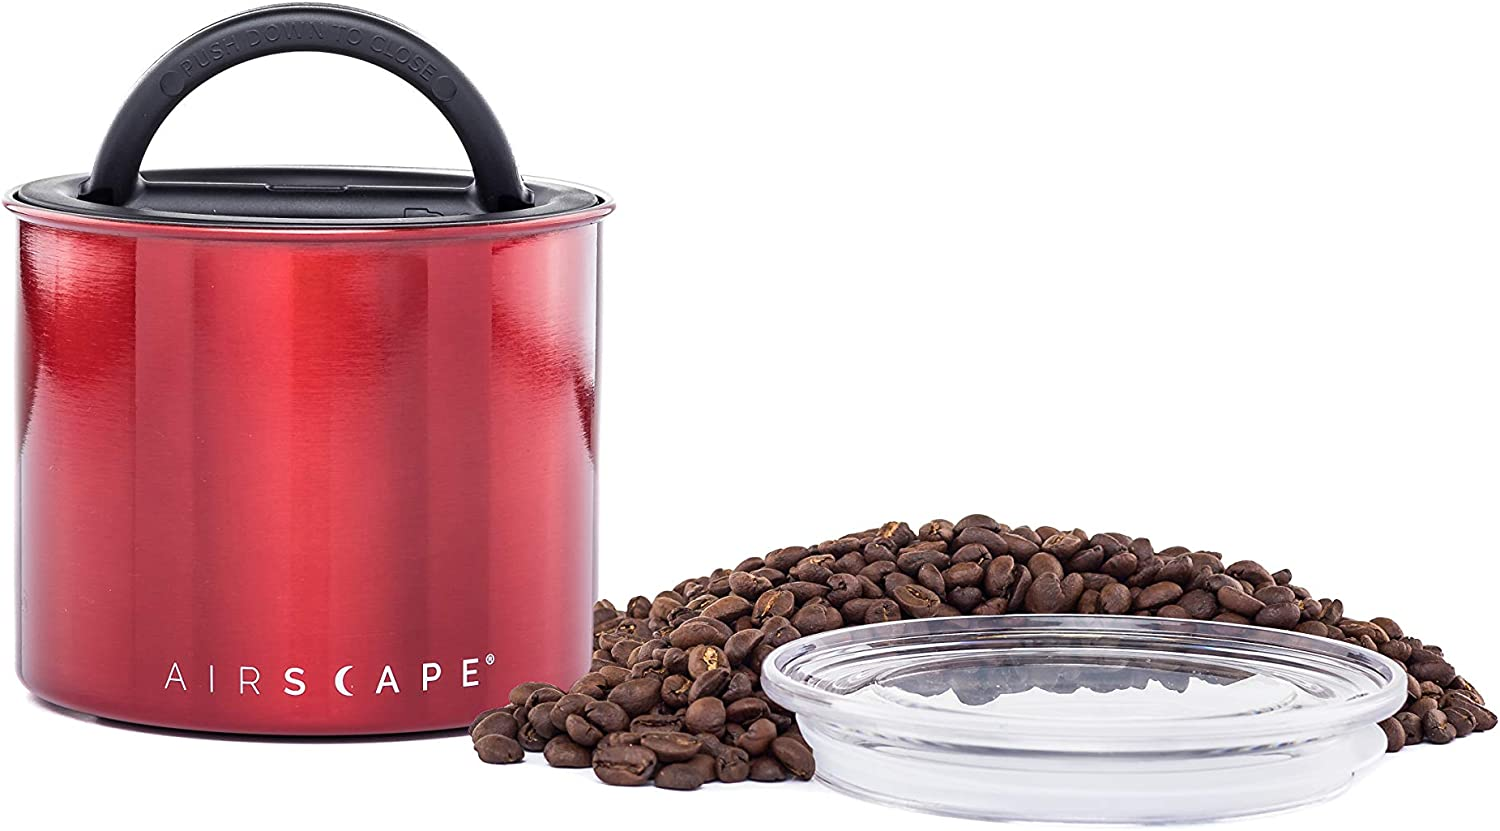 Airscape Coffee and Food Storage Canister - Patented Airtight Lid Preserve Food Freshness, Stainless Steel Food Container, Candy Apple Red, Small 4-Inch Can